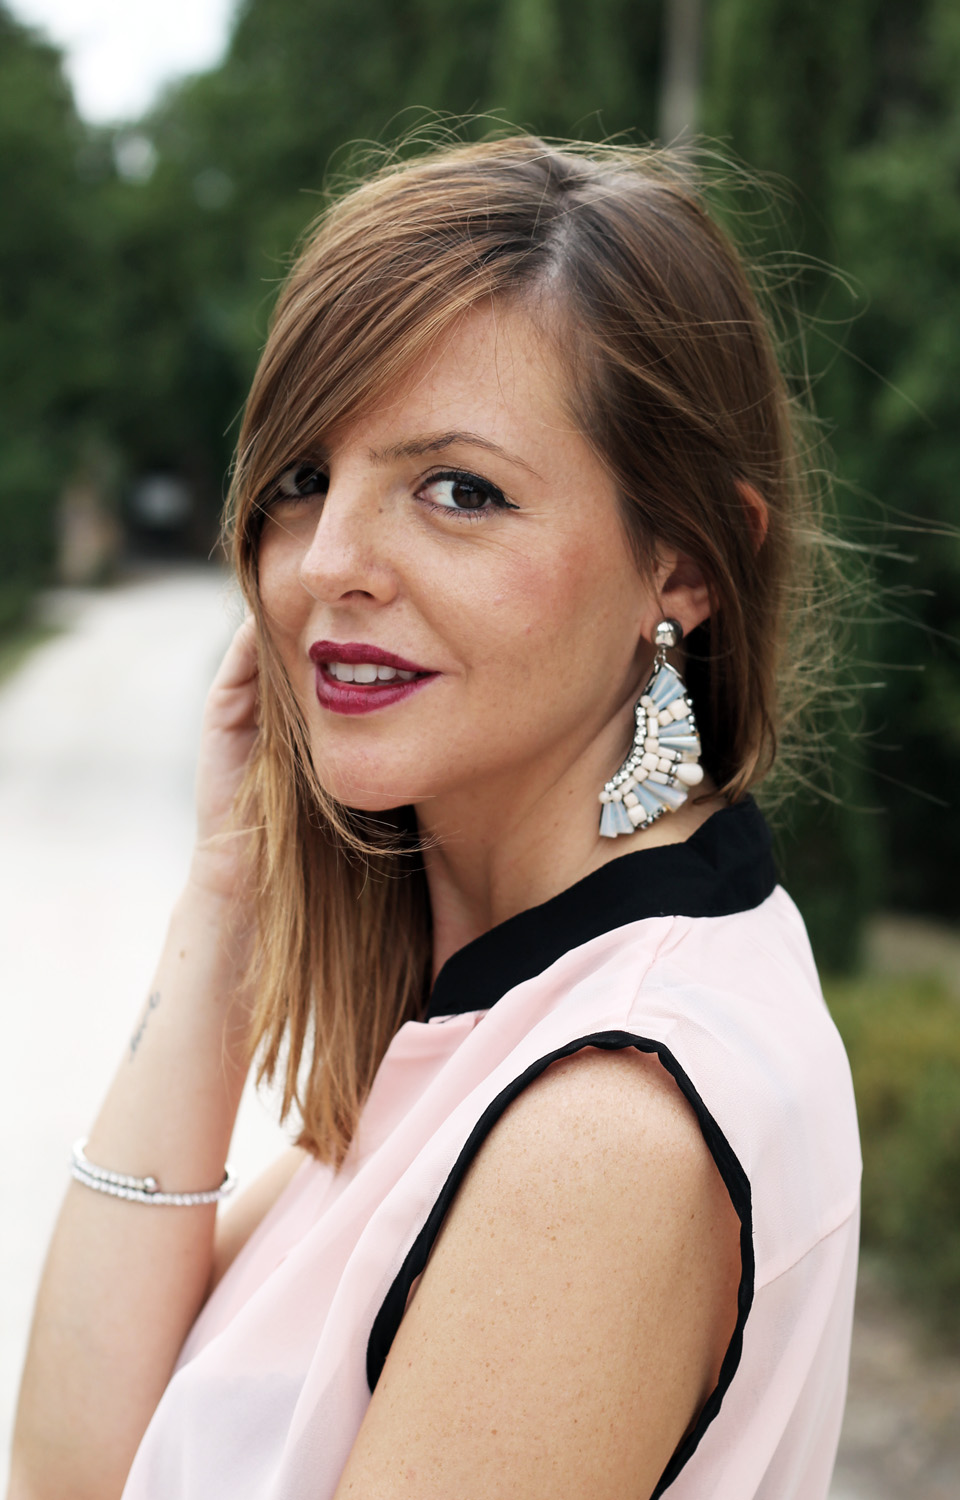 Francesca-Focarini-blogger-for-Luca-Barra-gioielli